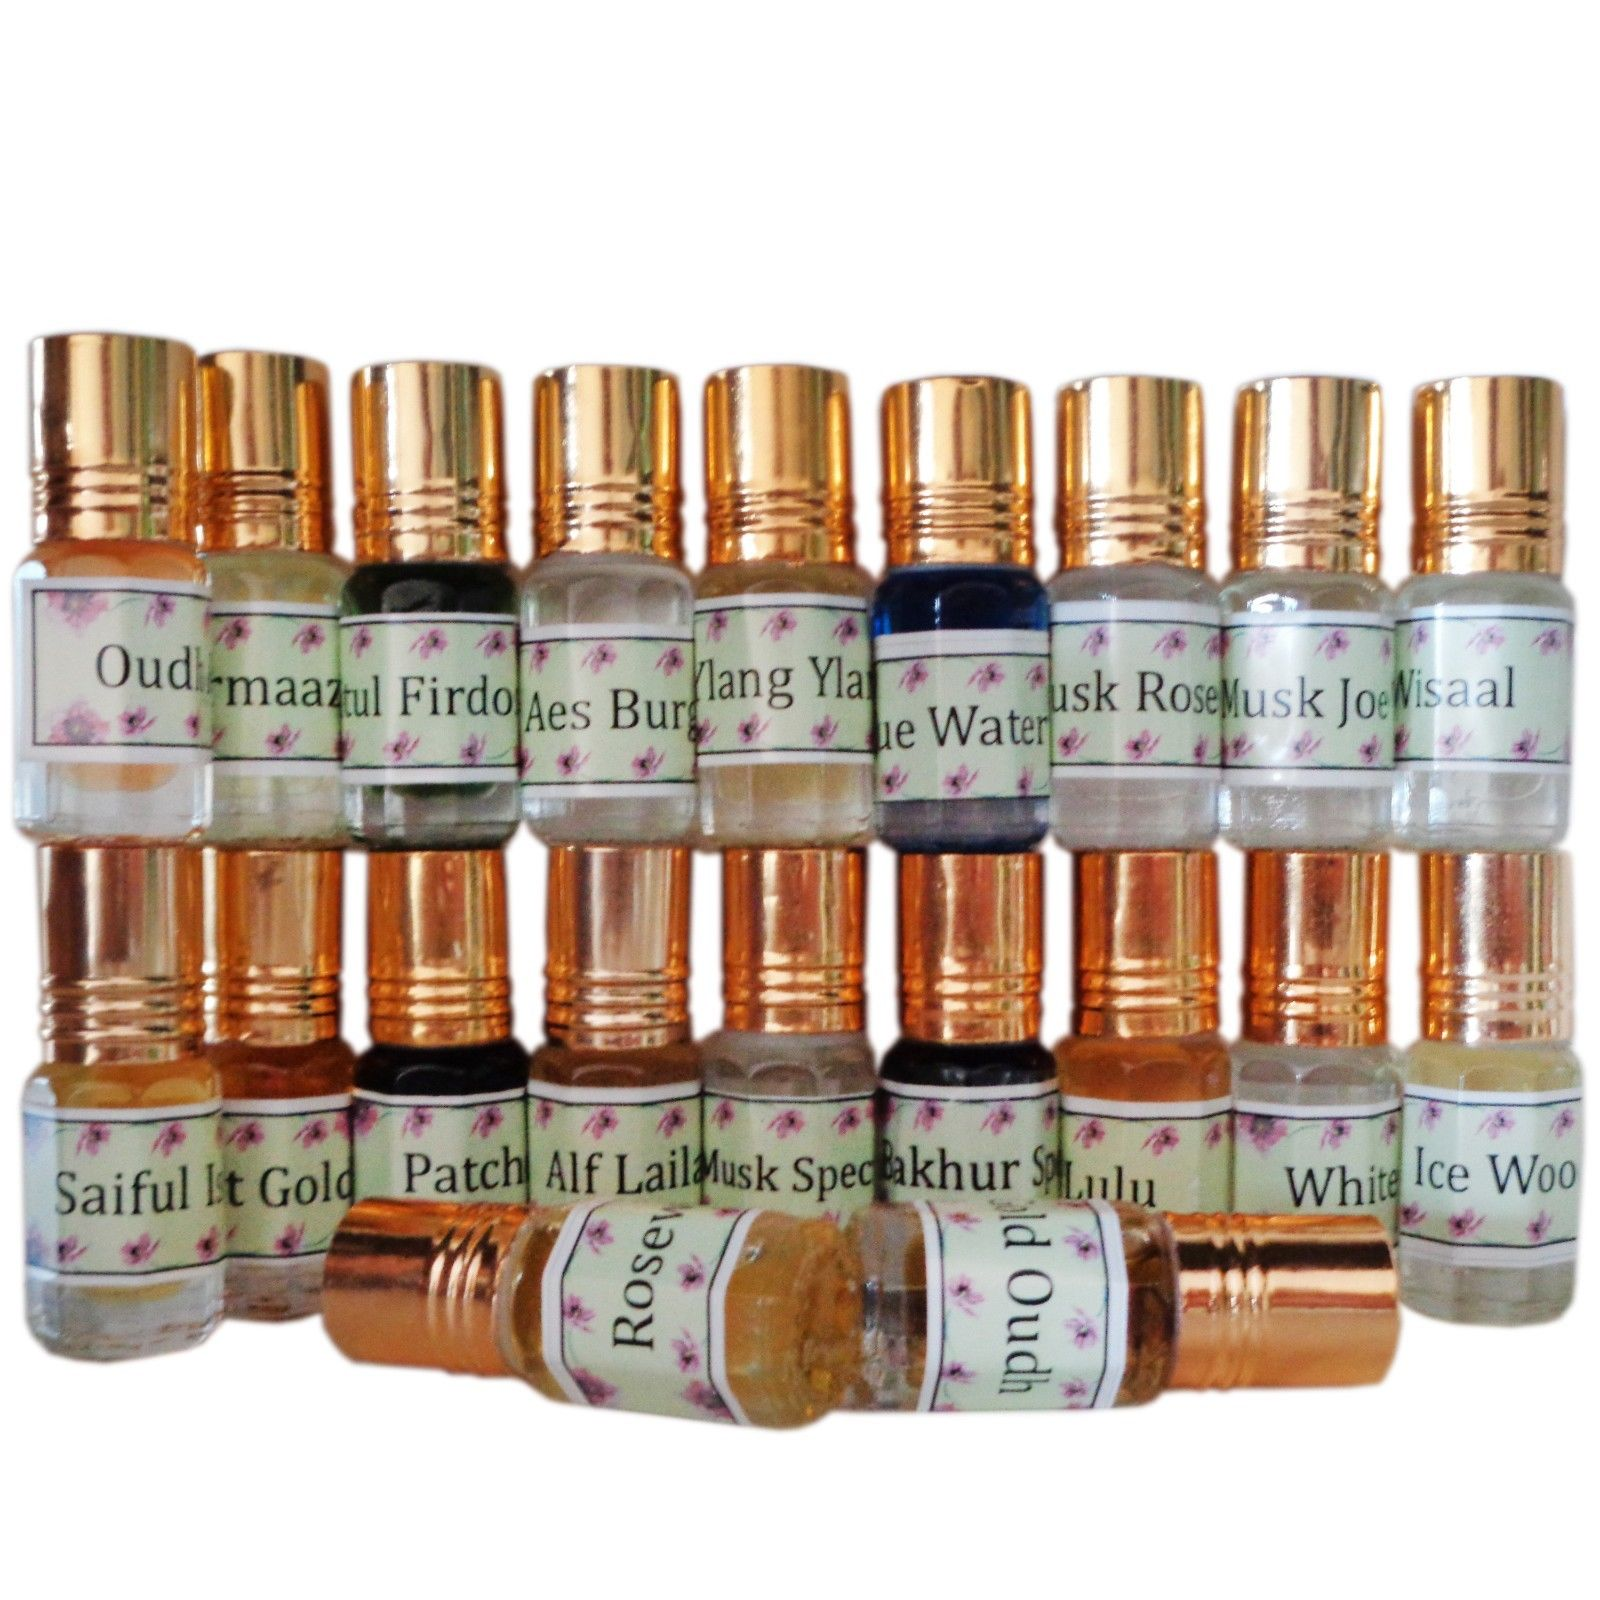 Arabic, Indian Occidental Attar CPO Oil 3 Ml, Alcohol Free, Buy 3 Get 2 Free!! Free Ship